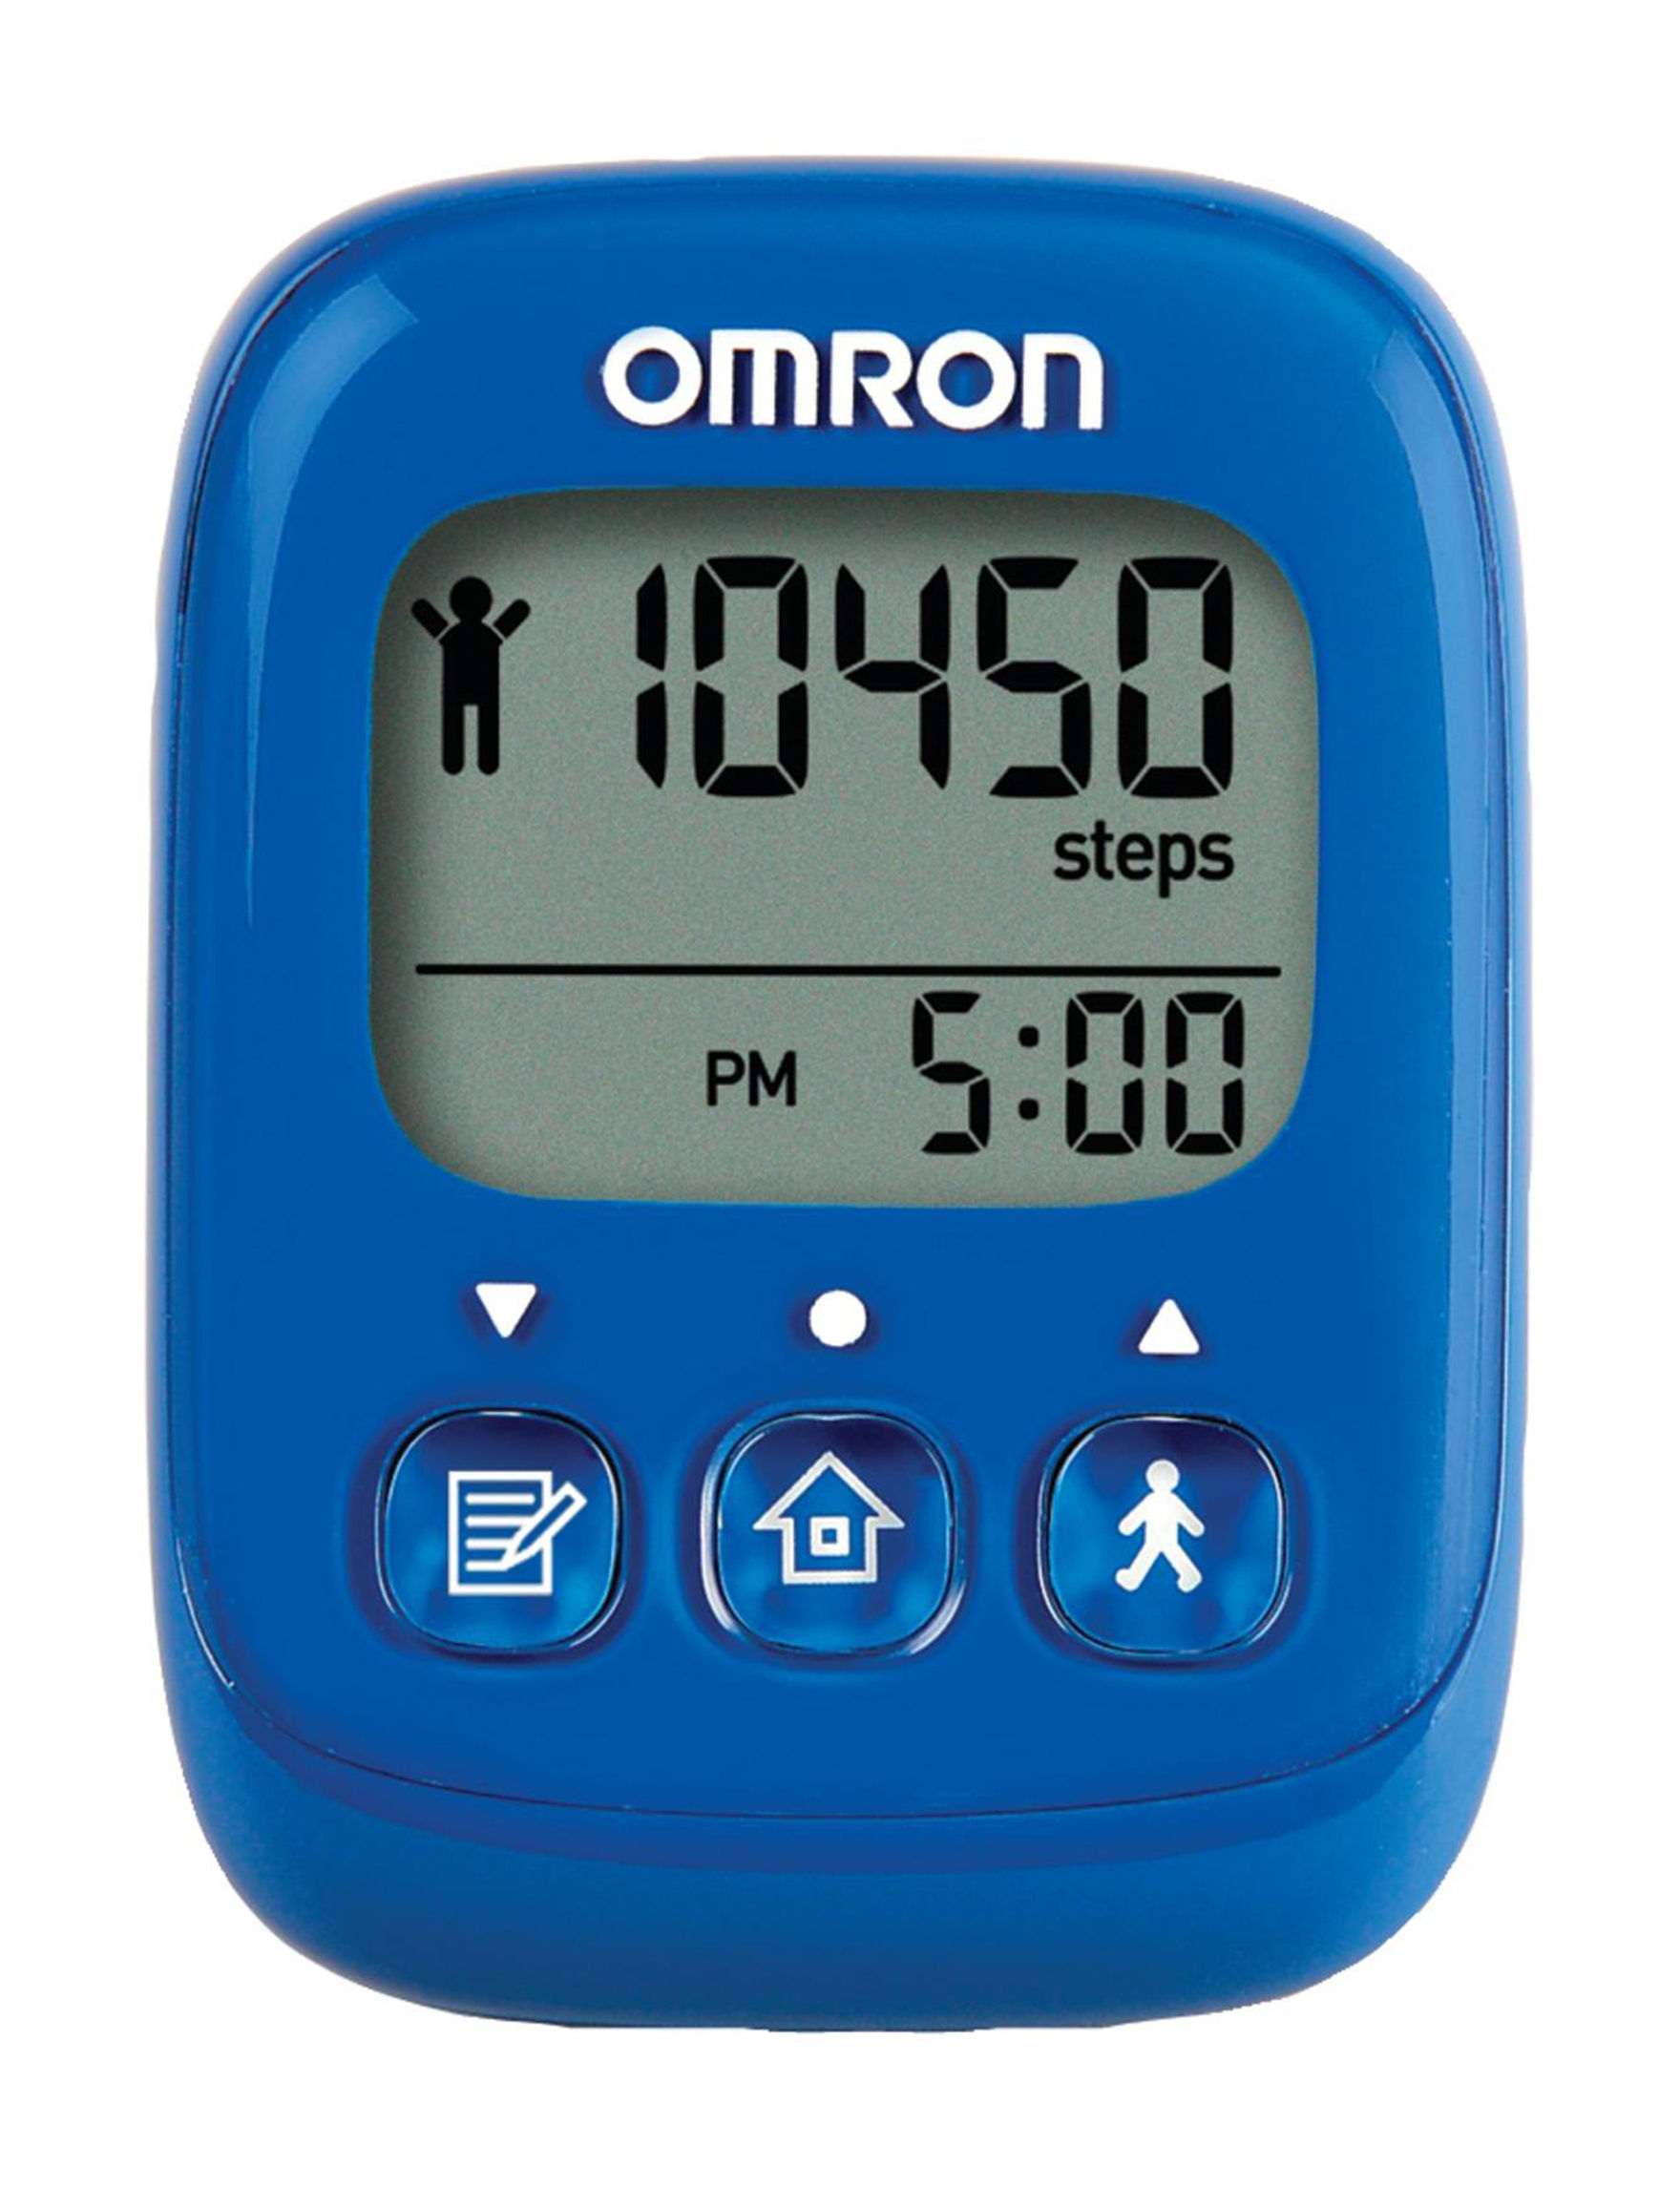 Omron Blue Pedometers Fitness Tech & Tracking